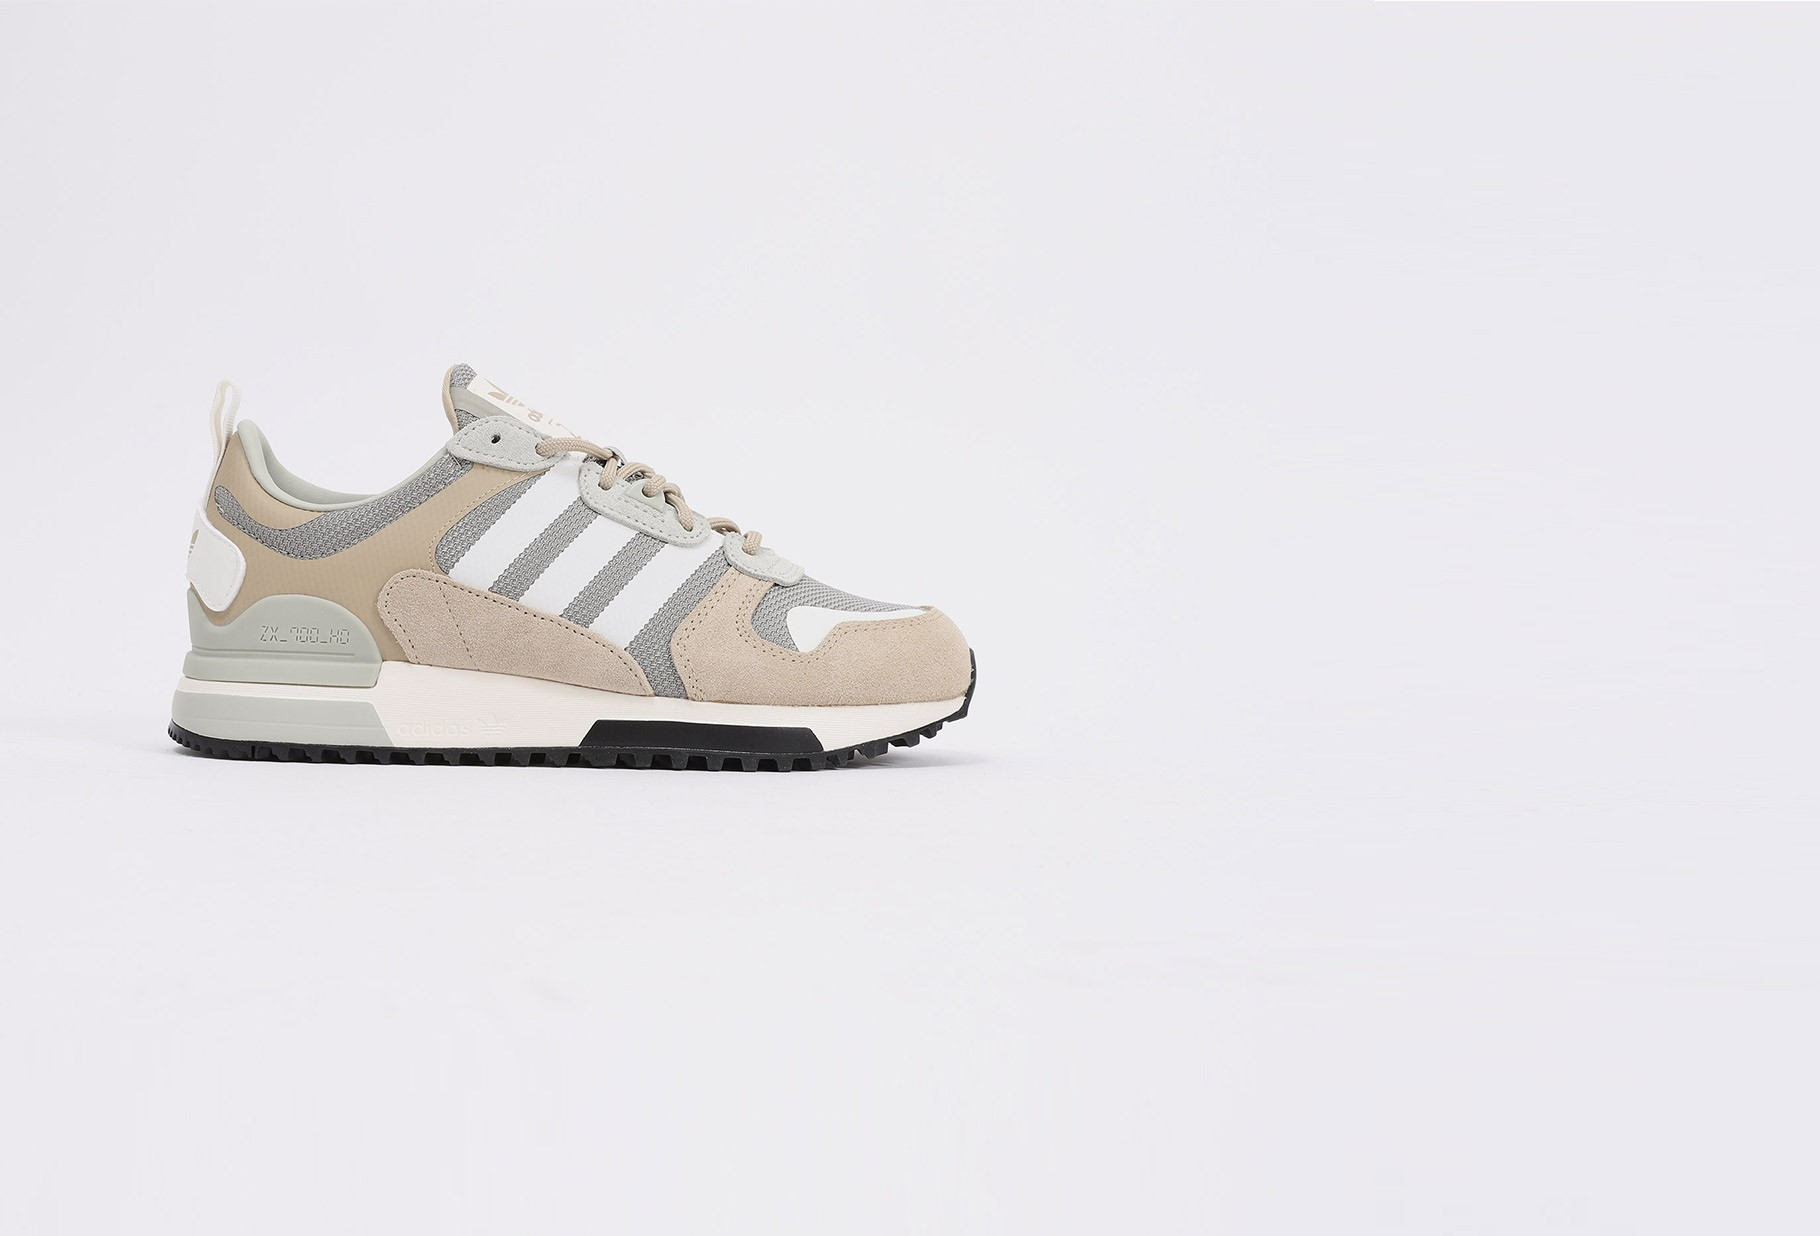 ADIDAS / Zx 700 hd Beiton/owhite/feagry